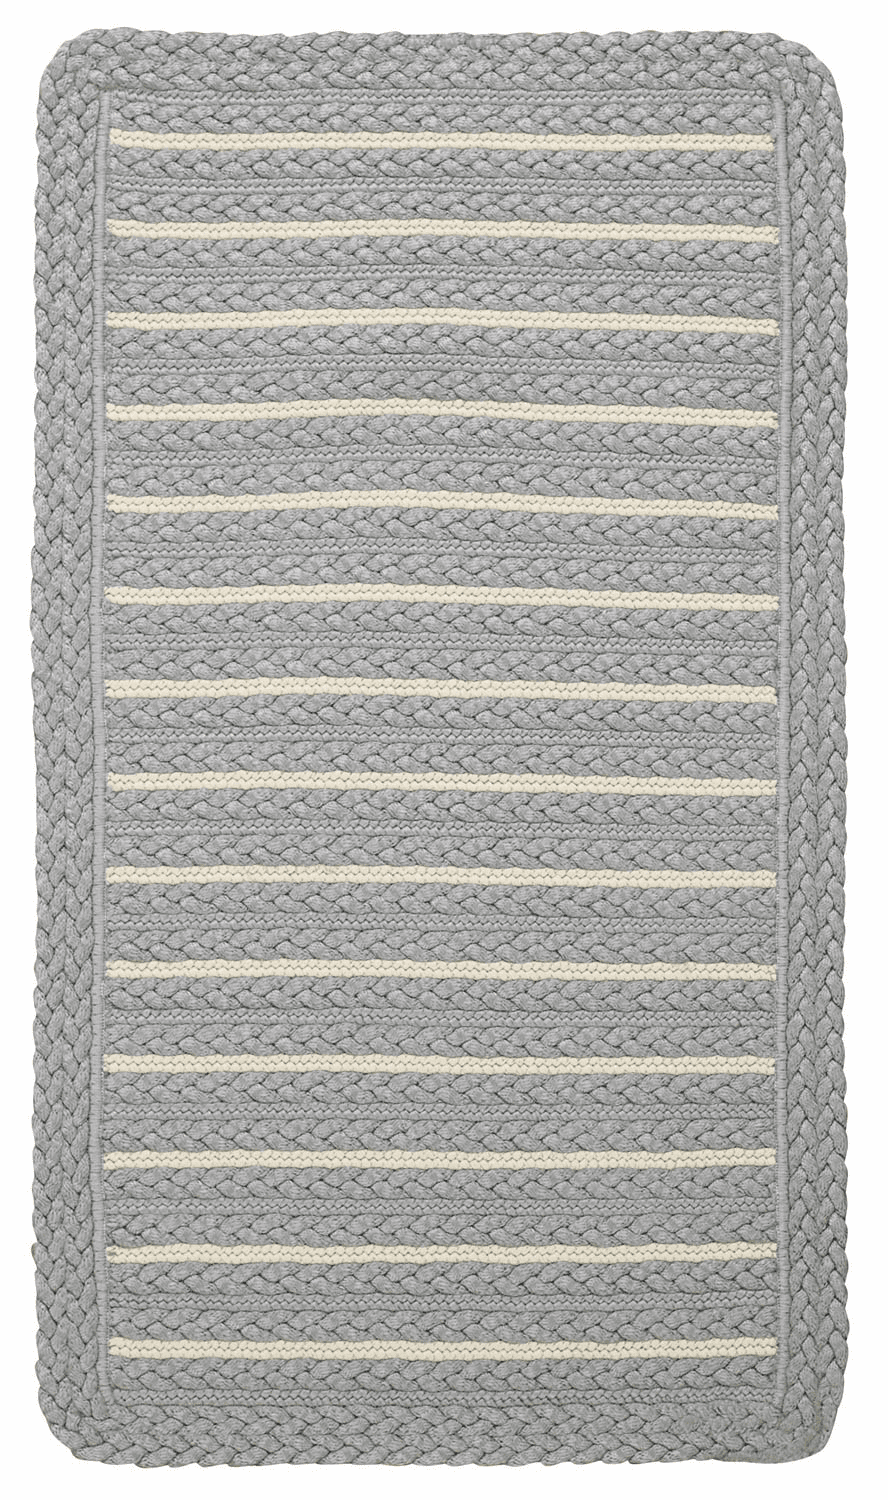 Hand-Braided Smoke Beige Rug